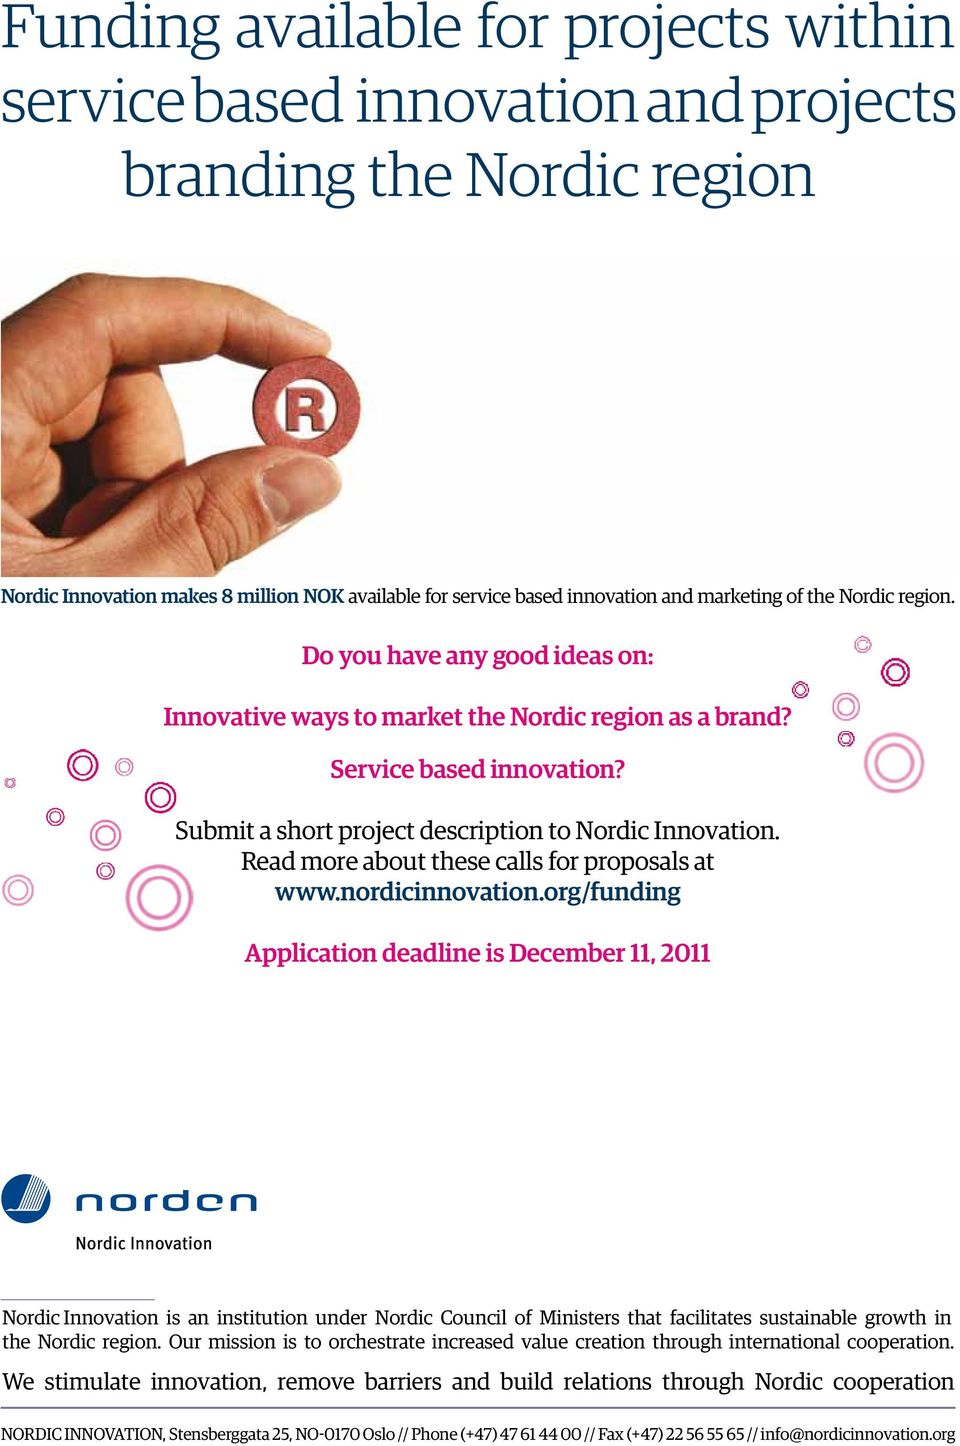 Read more about these calls for proposals at www.nordicinnovation.